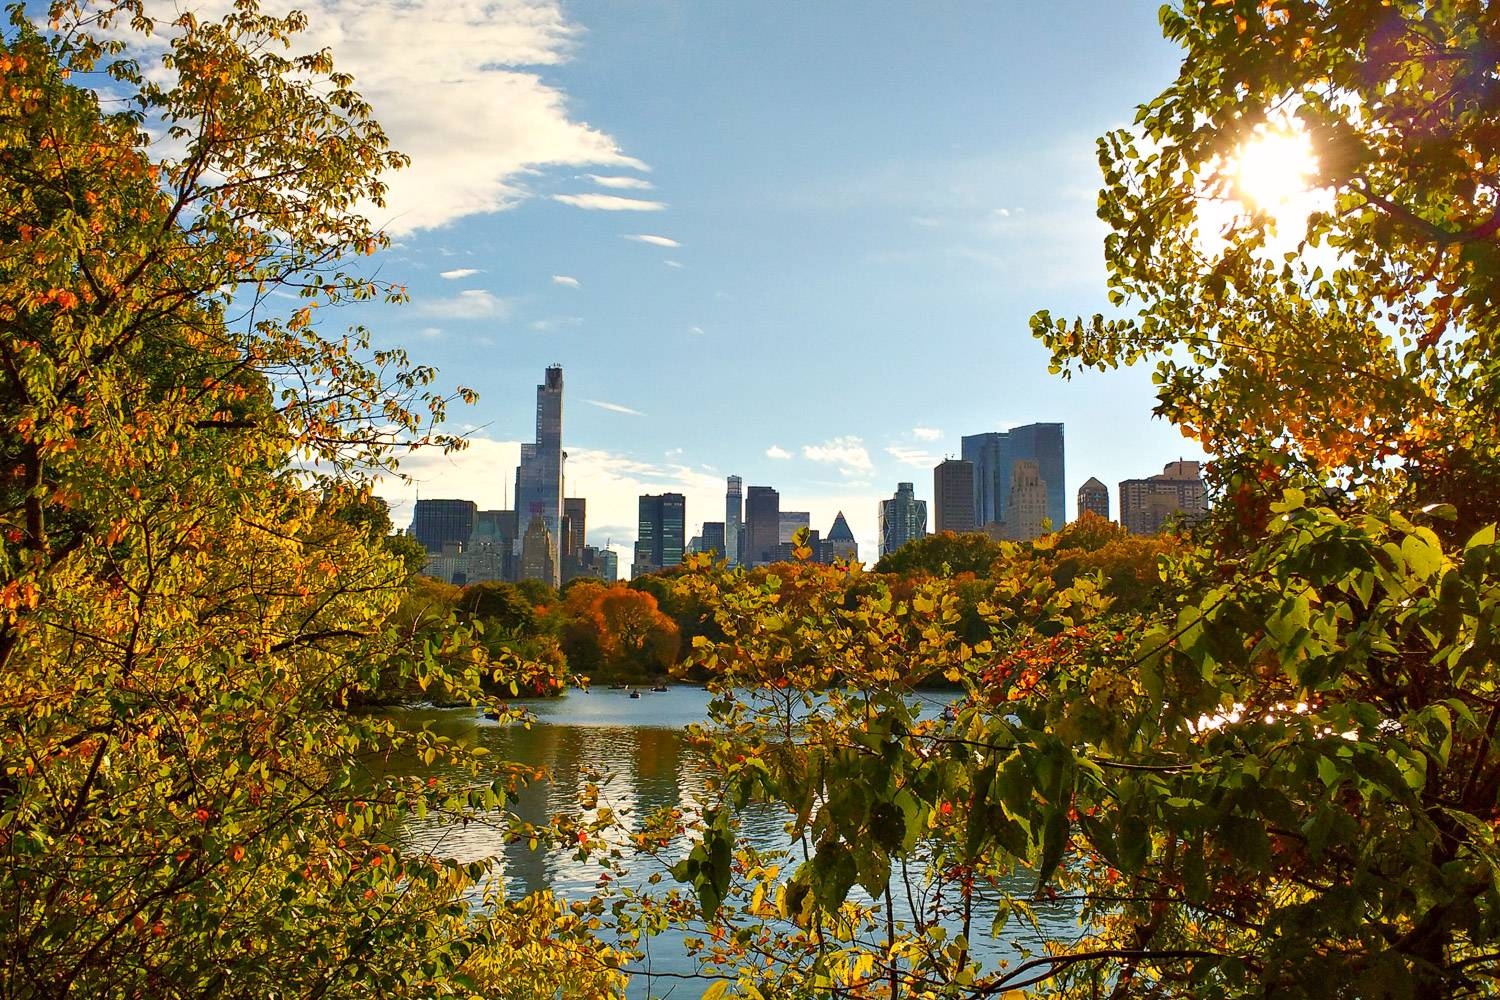 Image of Central Park with fall foliage on tress and pond with NYC skyline in the background